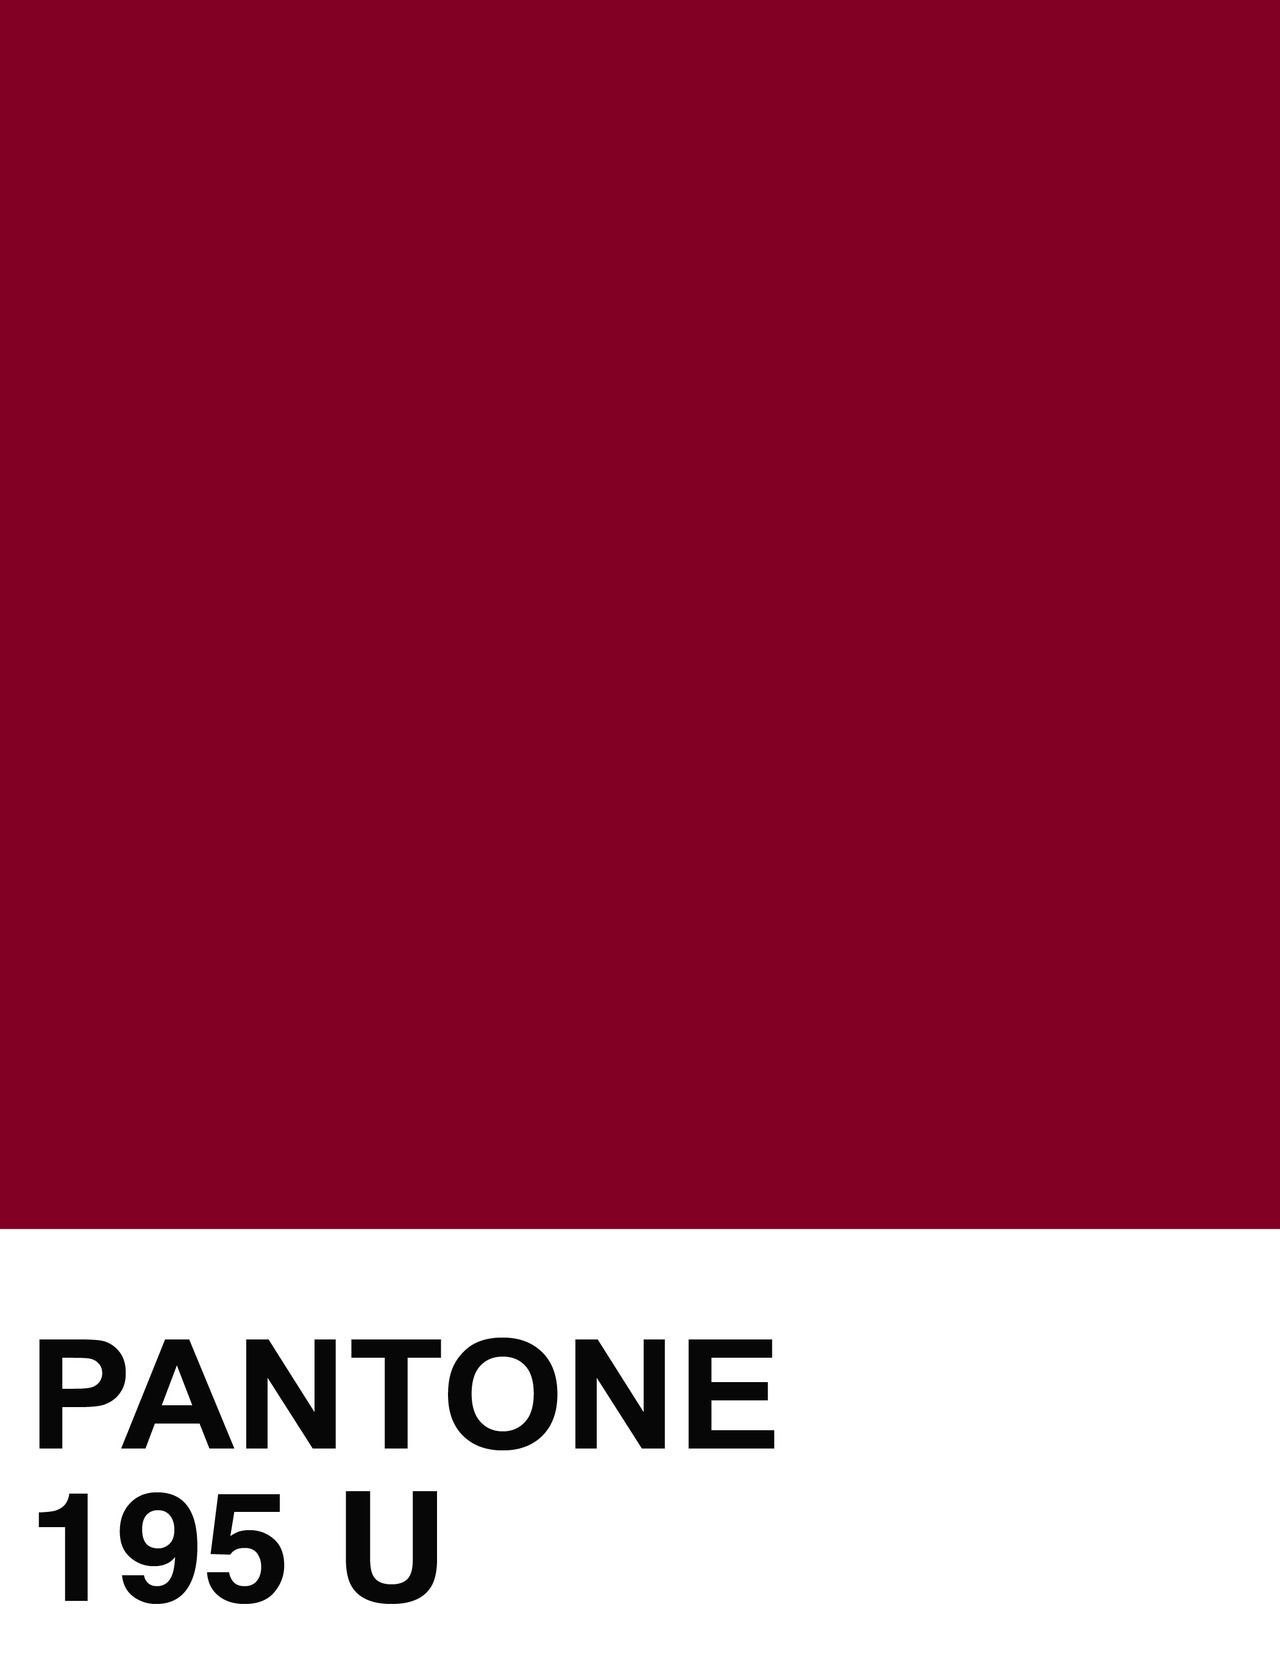 PANTONE 195 U Color Swatch | The House of Beccaria ...